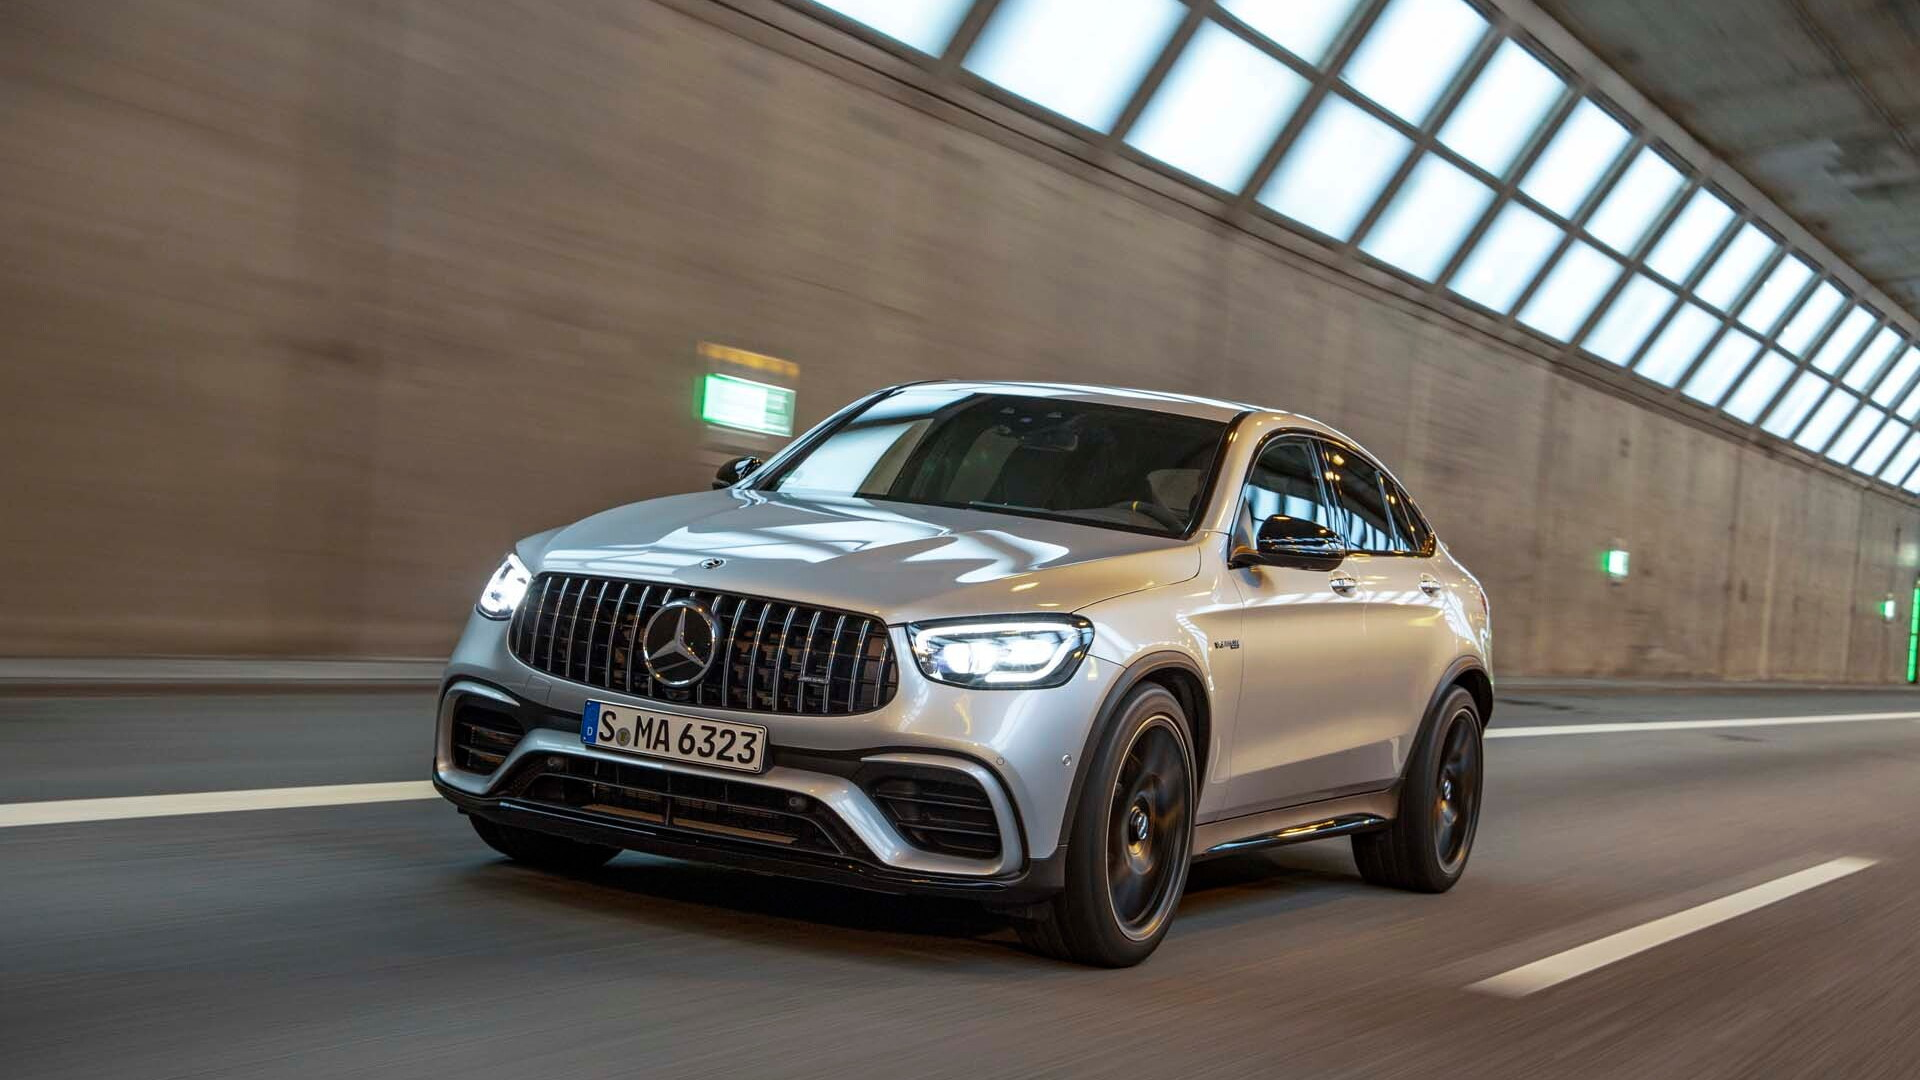 2020 Mercedes-Benz GLC 63 S Coupe first drive review